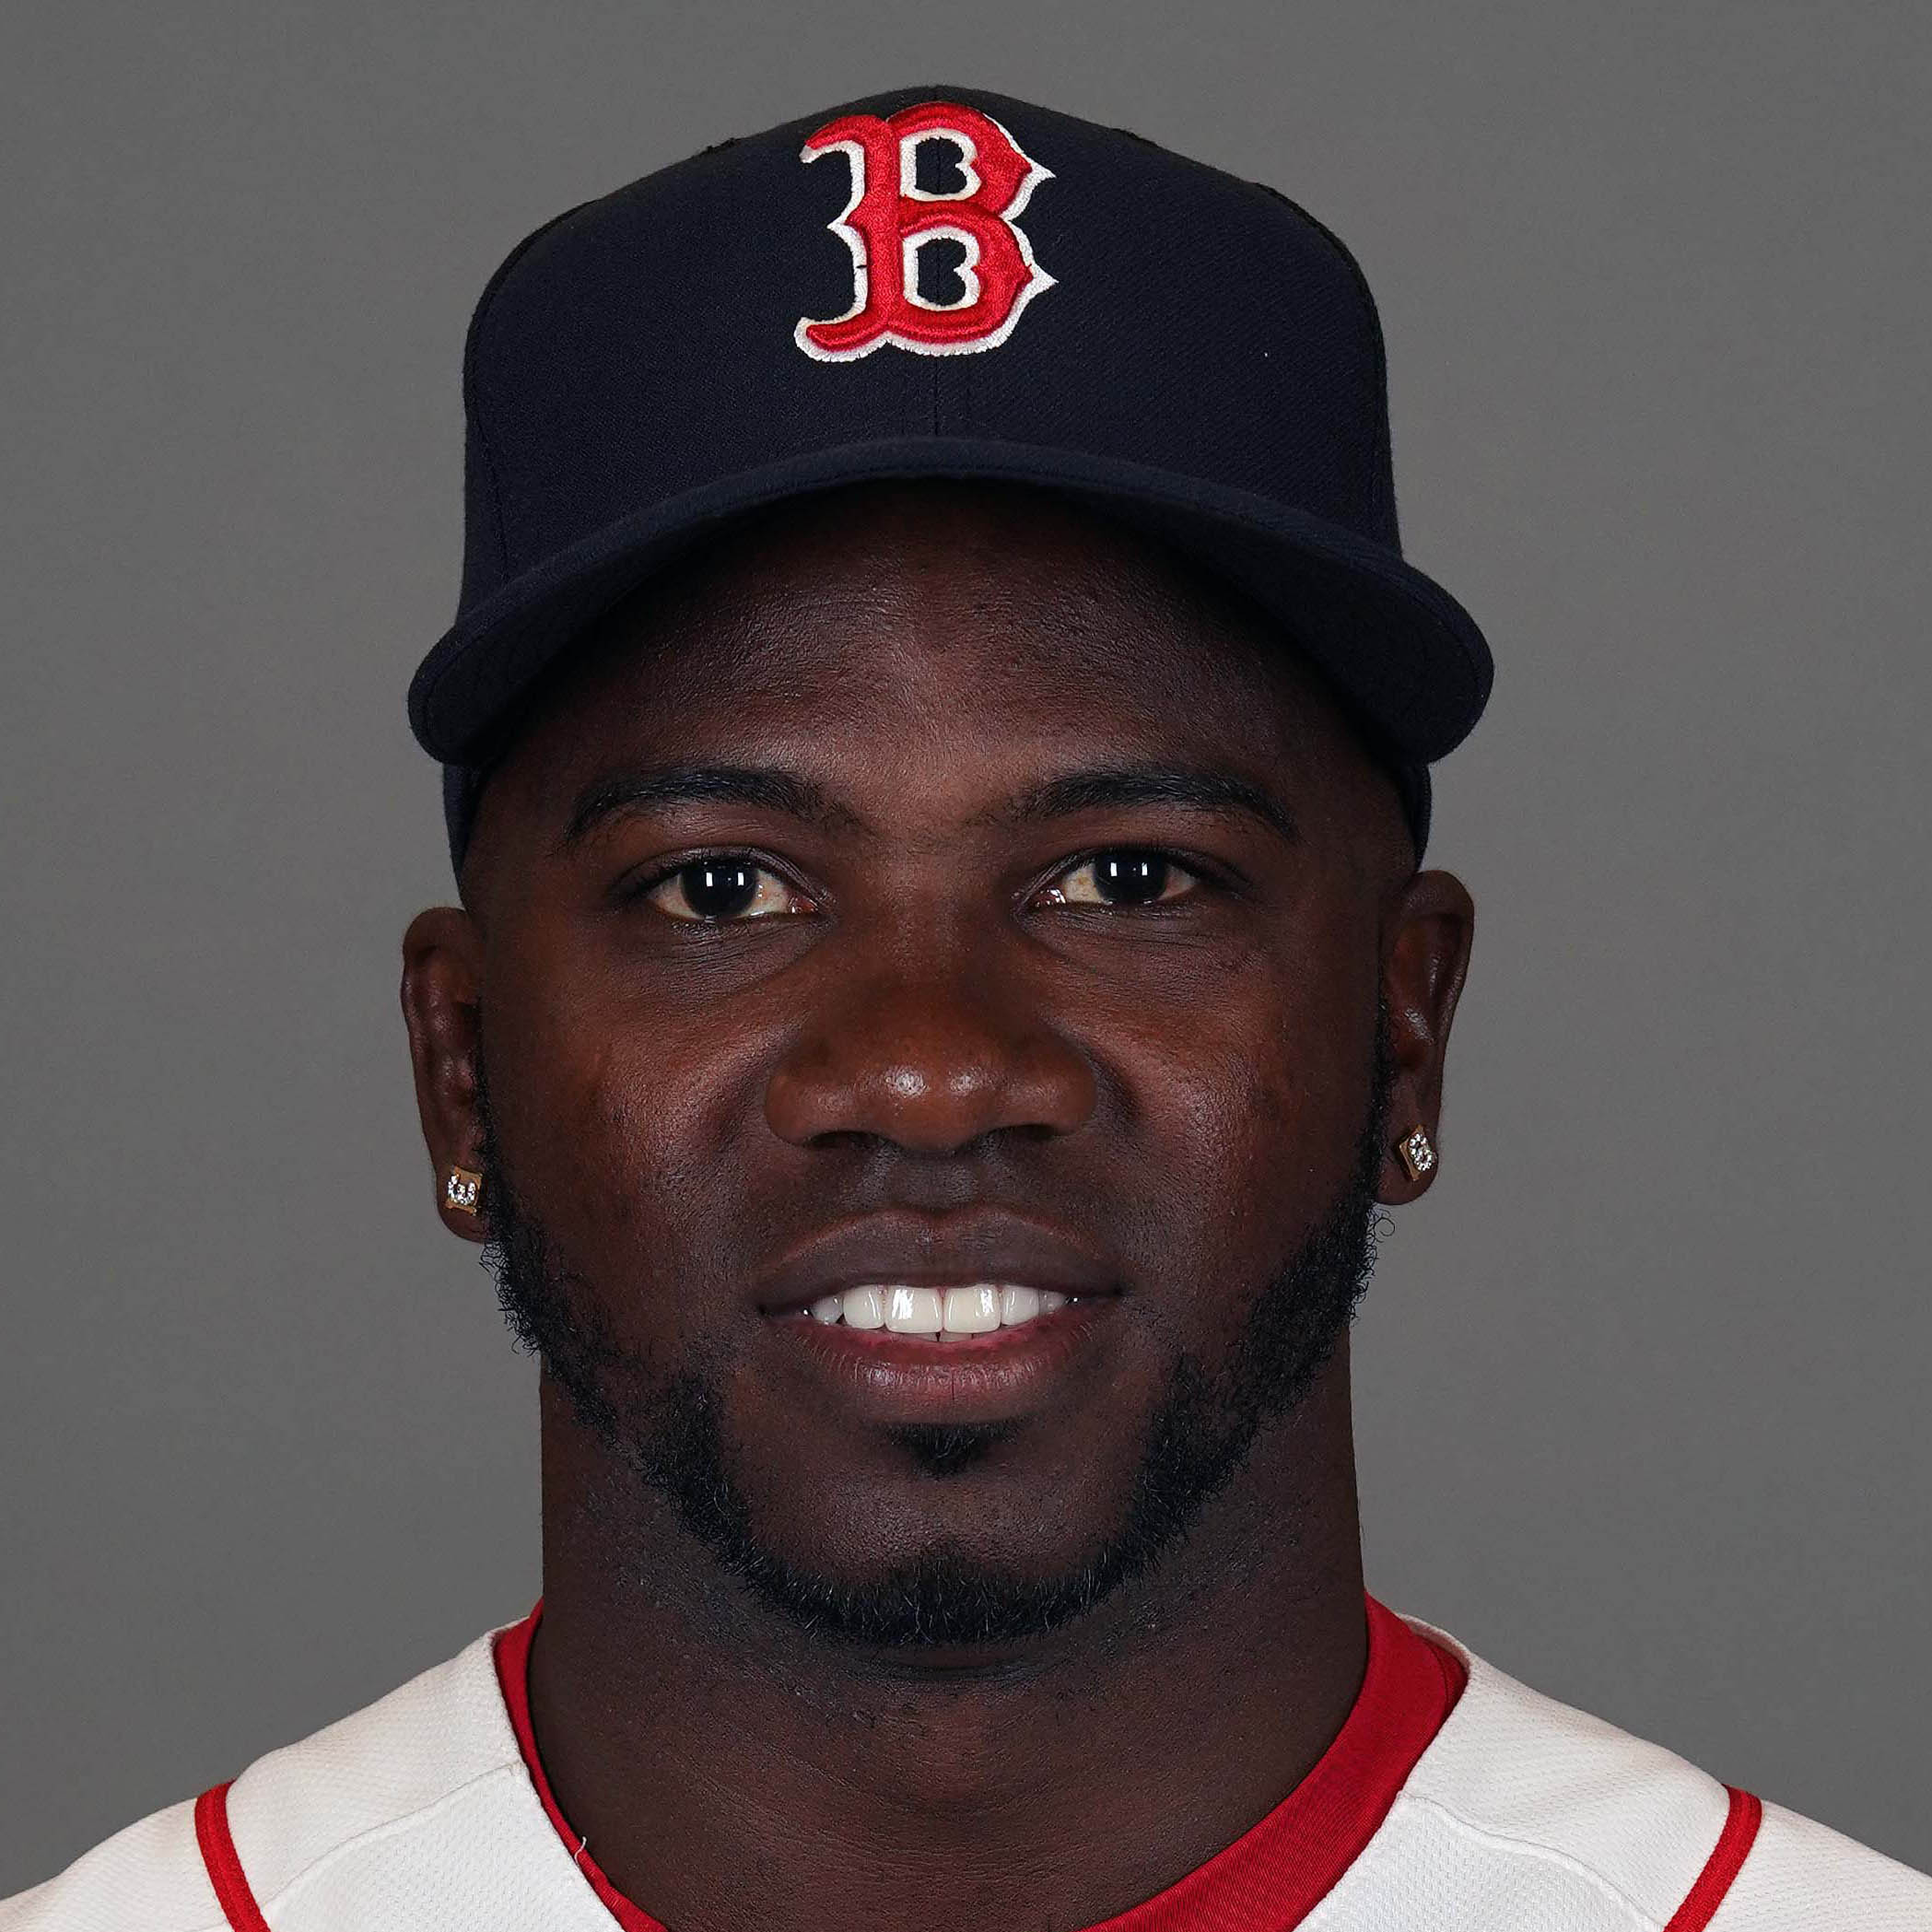 Rusney Castillo (R) Headshot